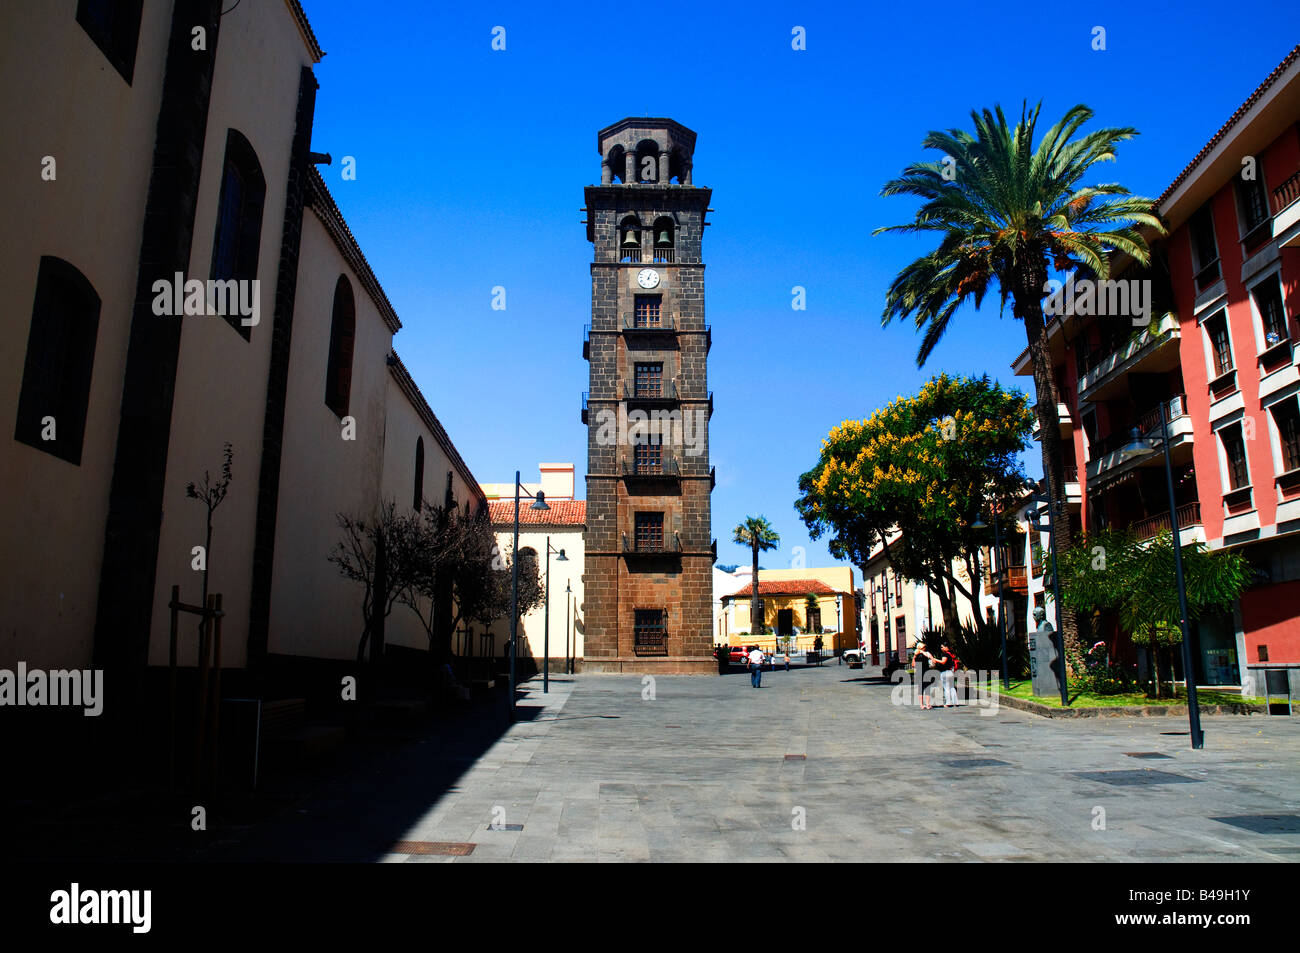 Nuestra Senora de la Concepcion (Our Lady if the Immaculate Conception) in La Laguna, Tenerife, Canary Islands, - Stock Image